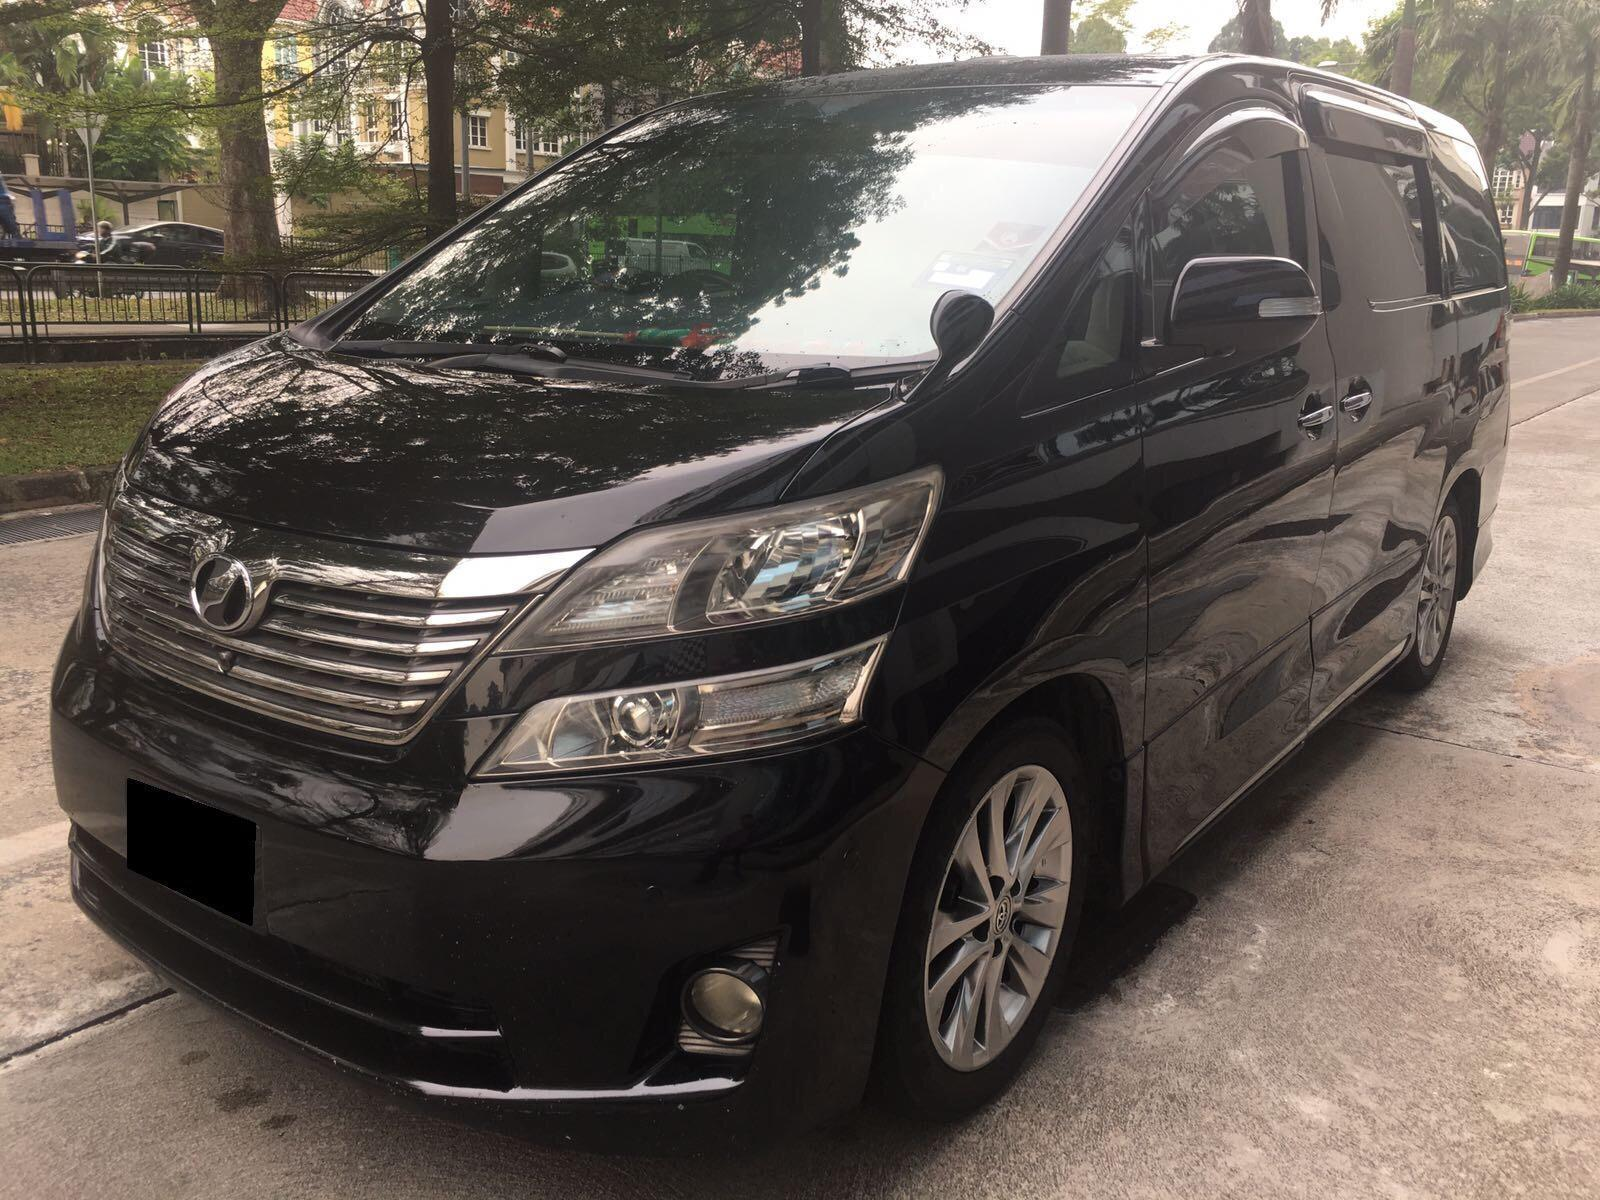 [TRANSPORT SERVICE] 2019 JANUARY PROMOTION SG TO JB